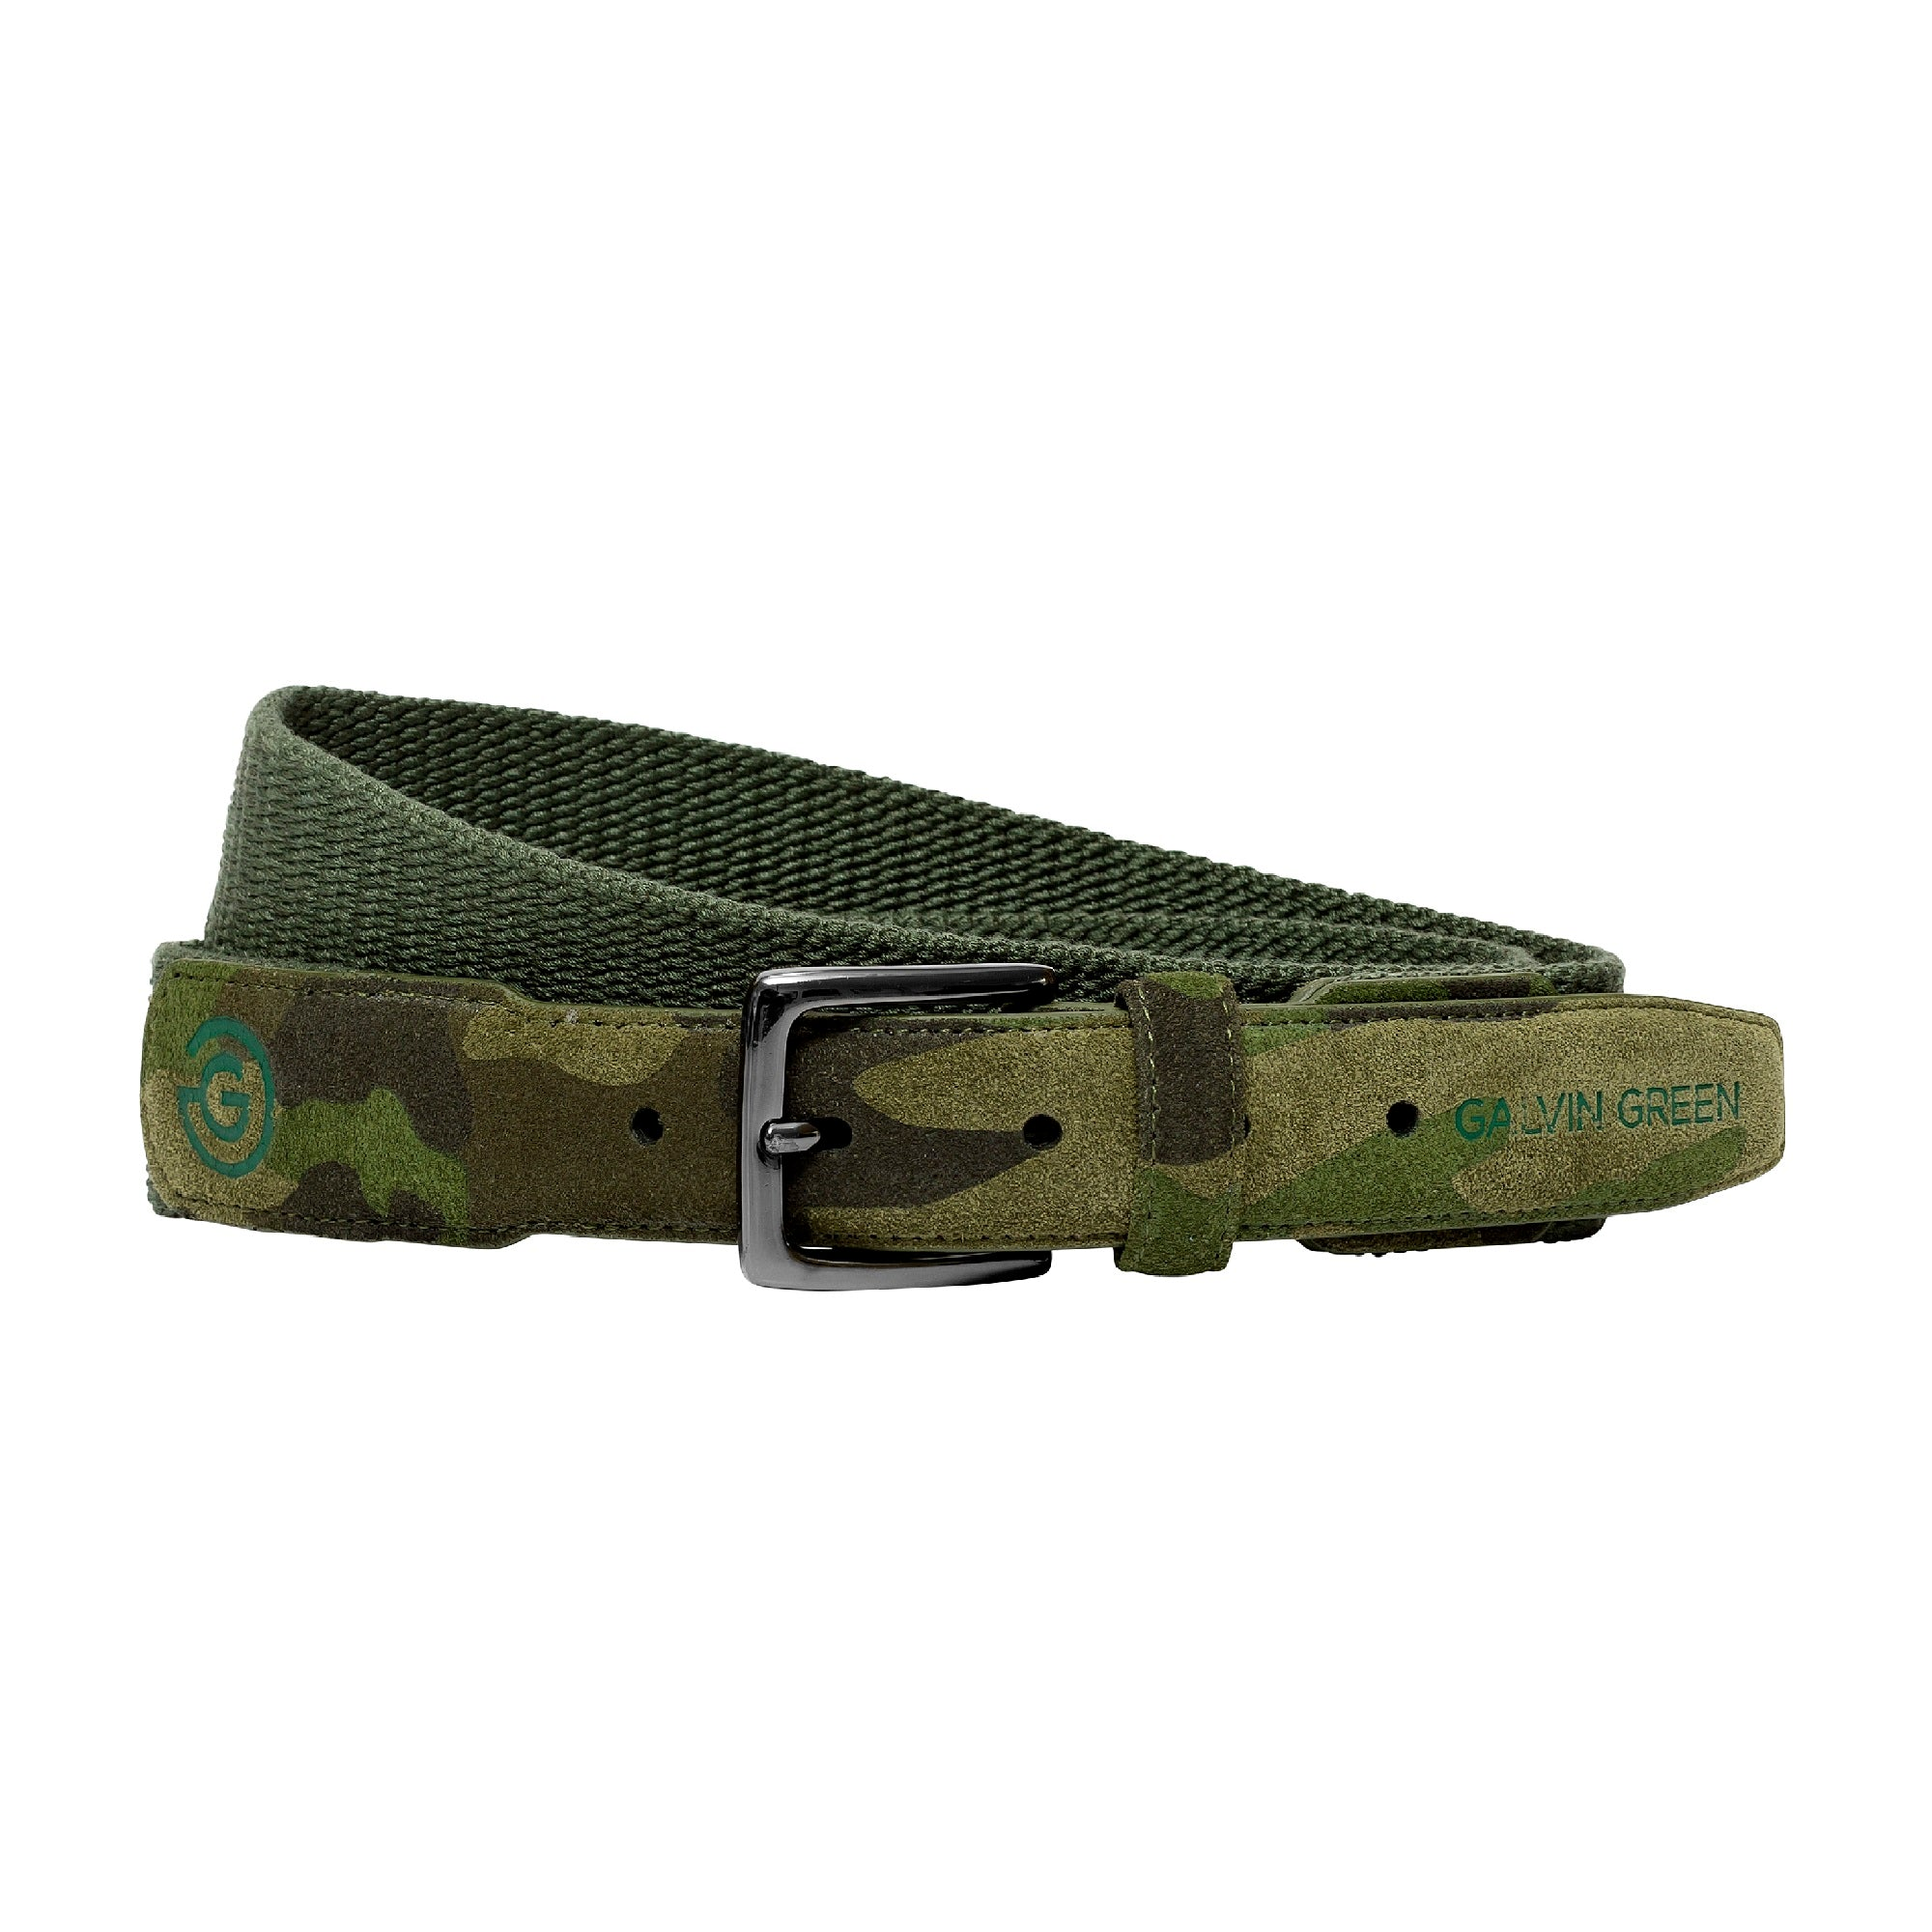 Galvin Green Edge E-Camo Golf Belt